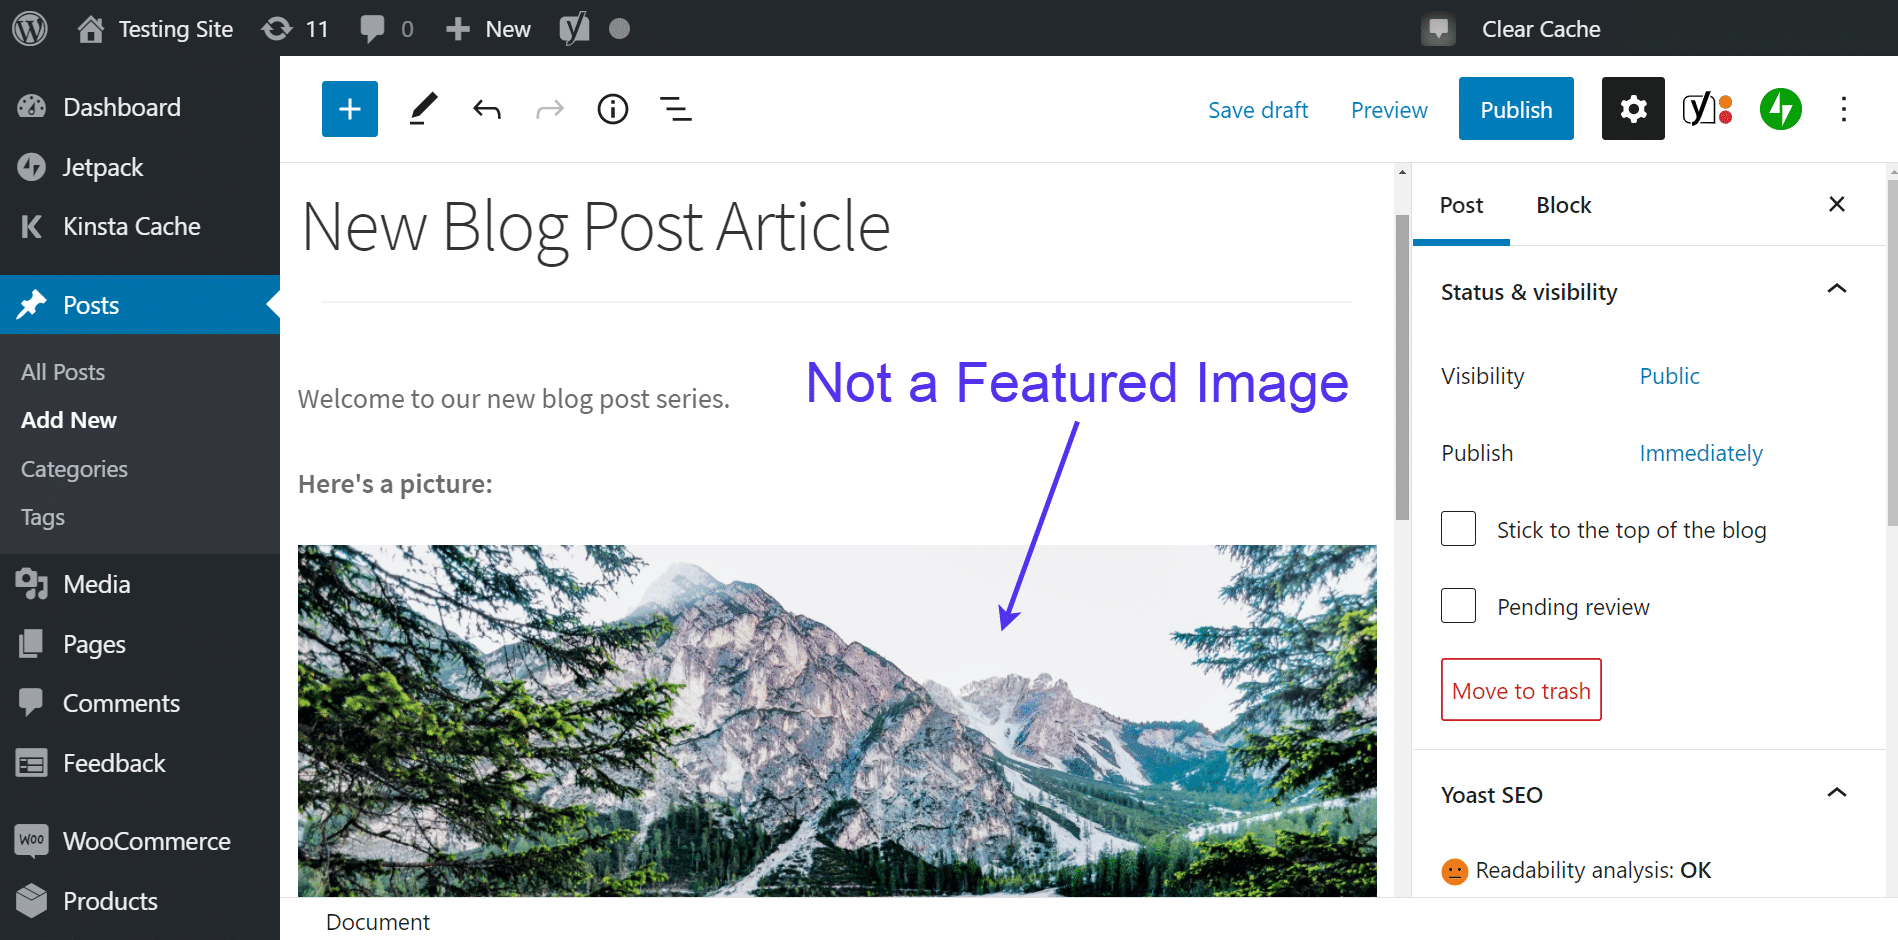 This is not a featured image